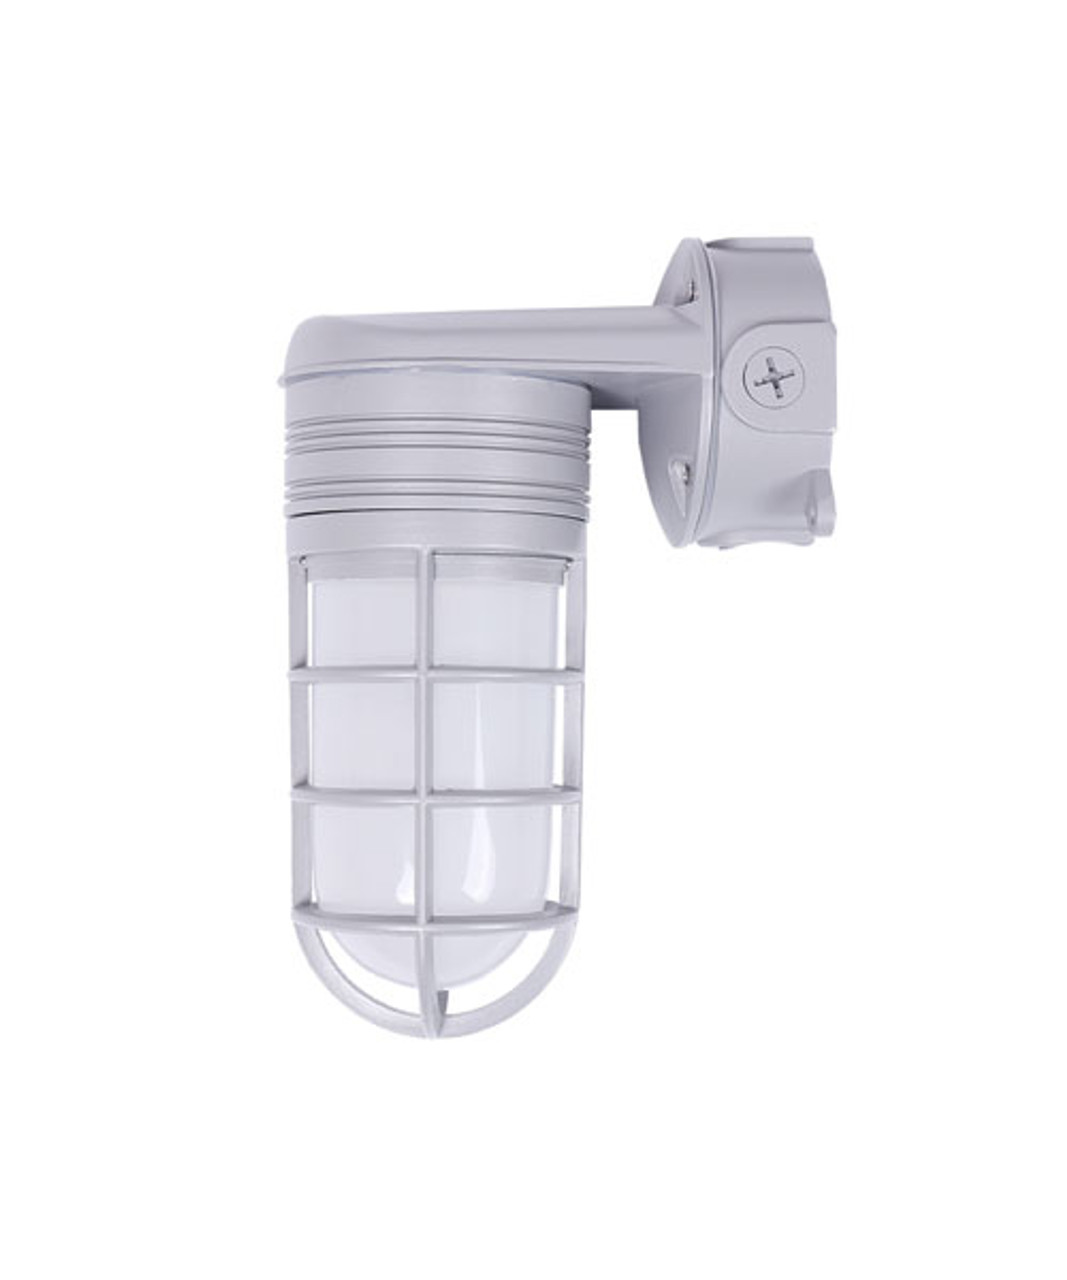 14 Watt Wall Mount LED Vaporproof Jars